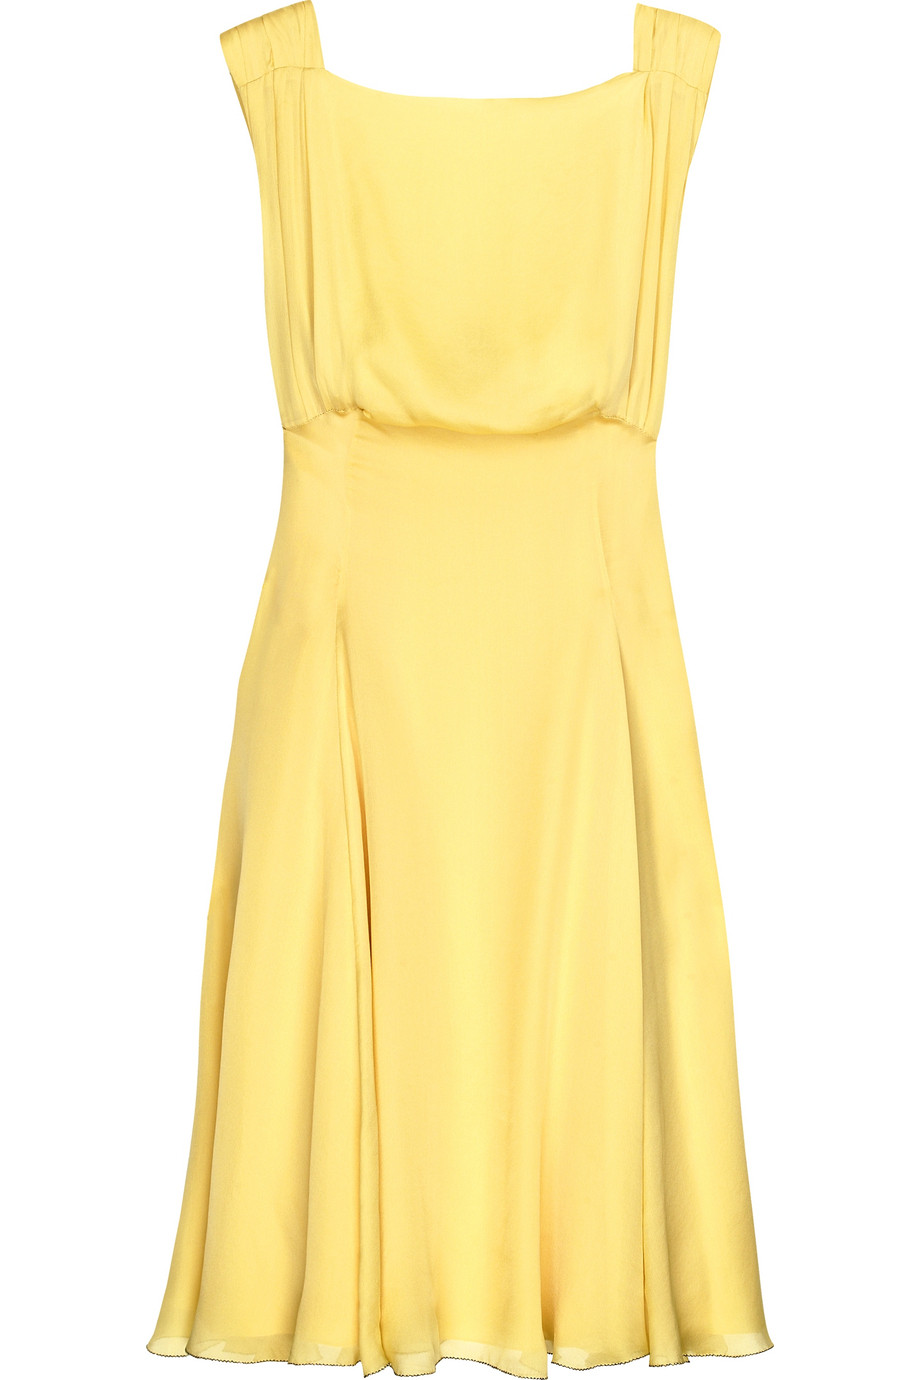 Discount moschino cheap and chic a